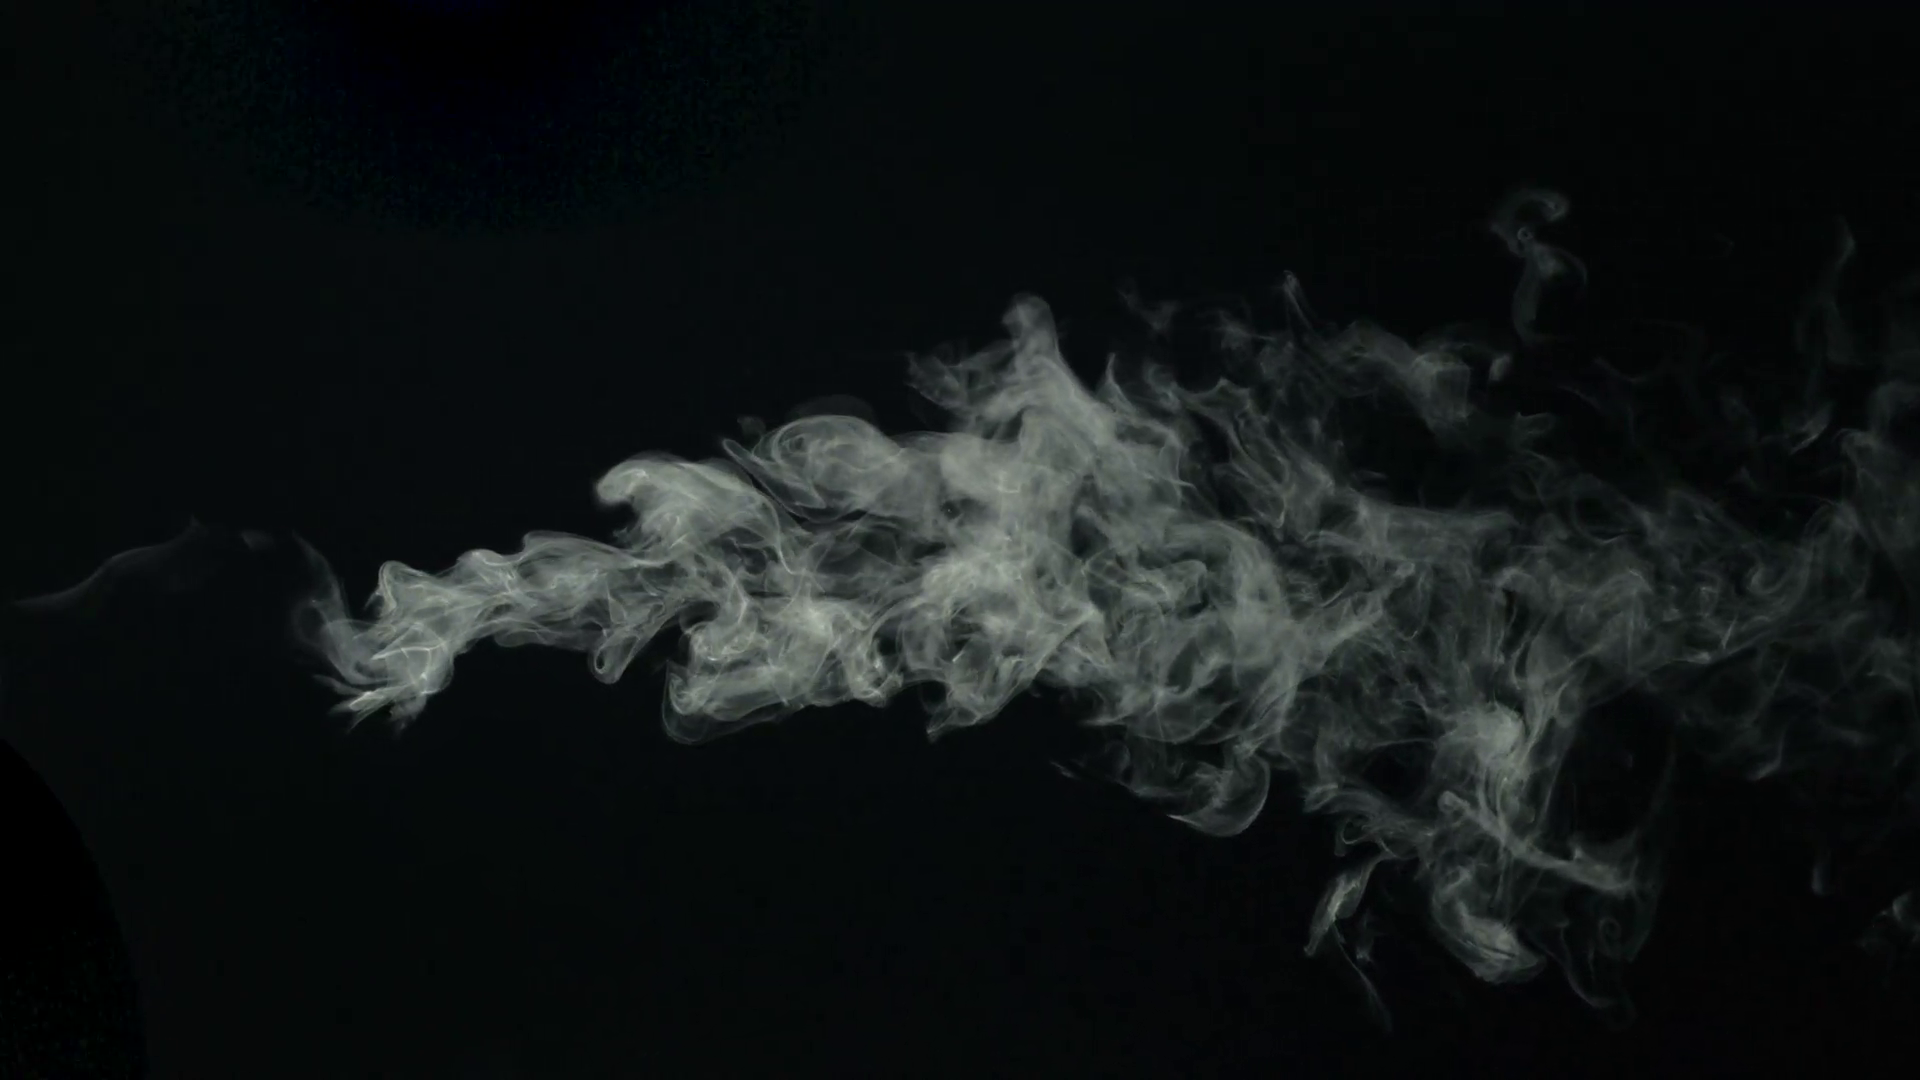 Smoke on black background, Slow Motion Stock Video Footage - Videoblocks